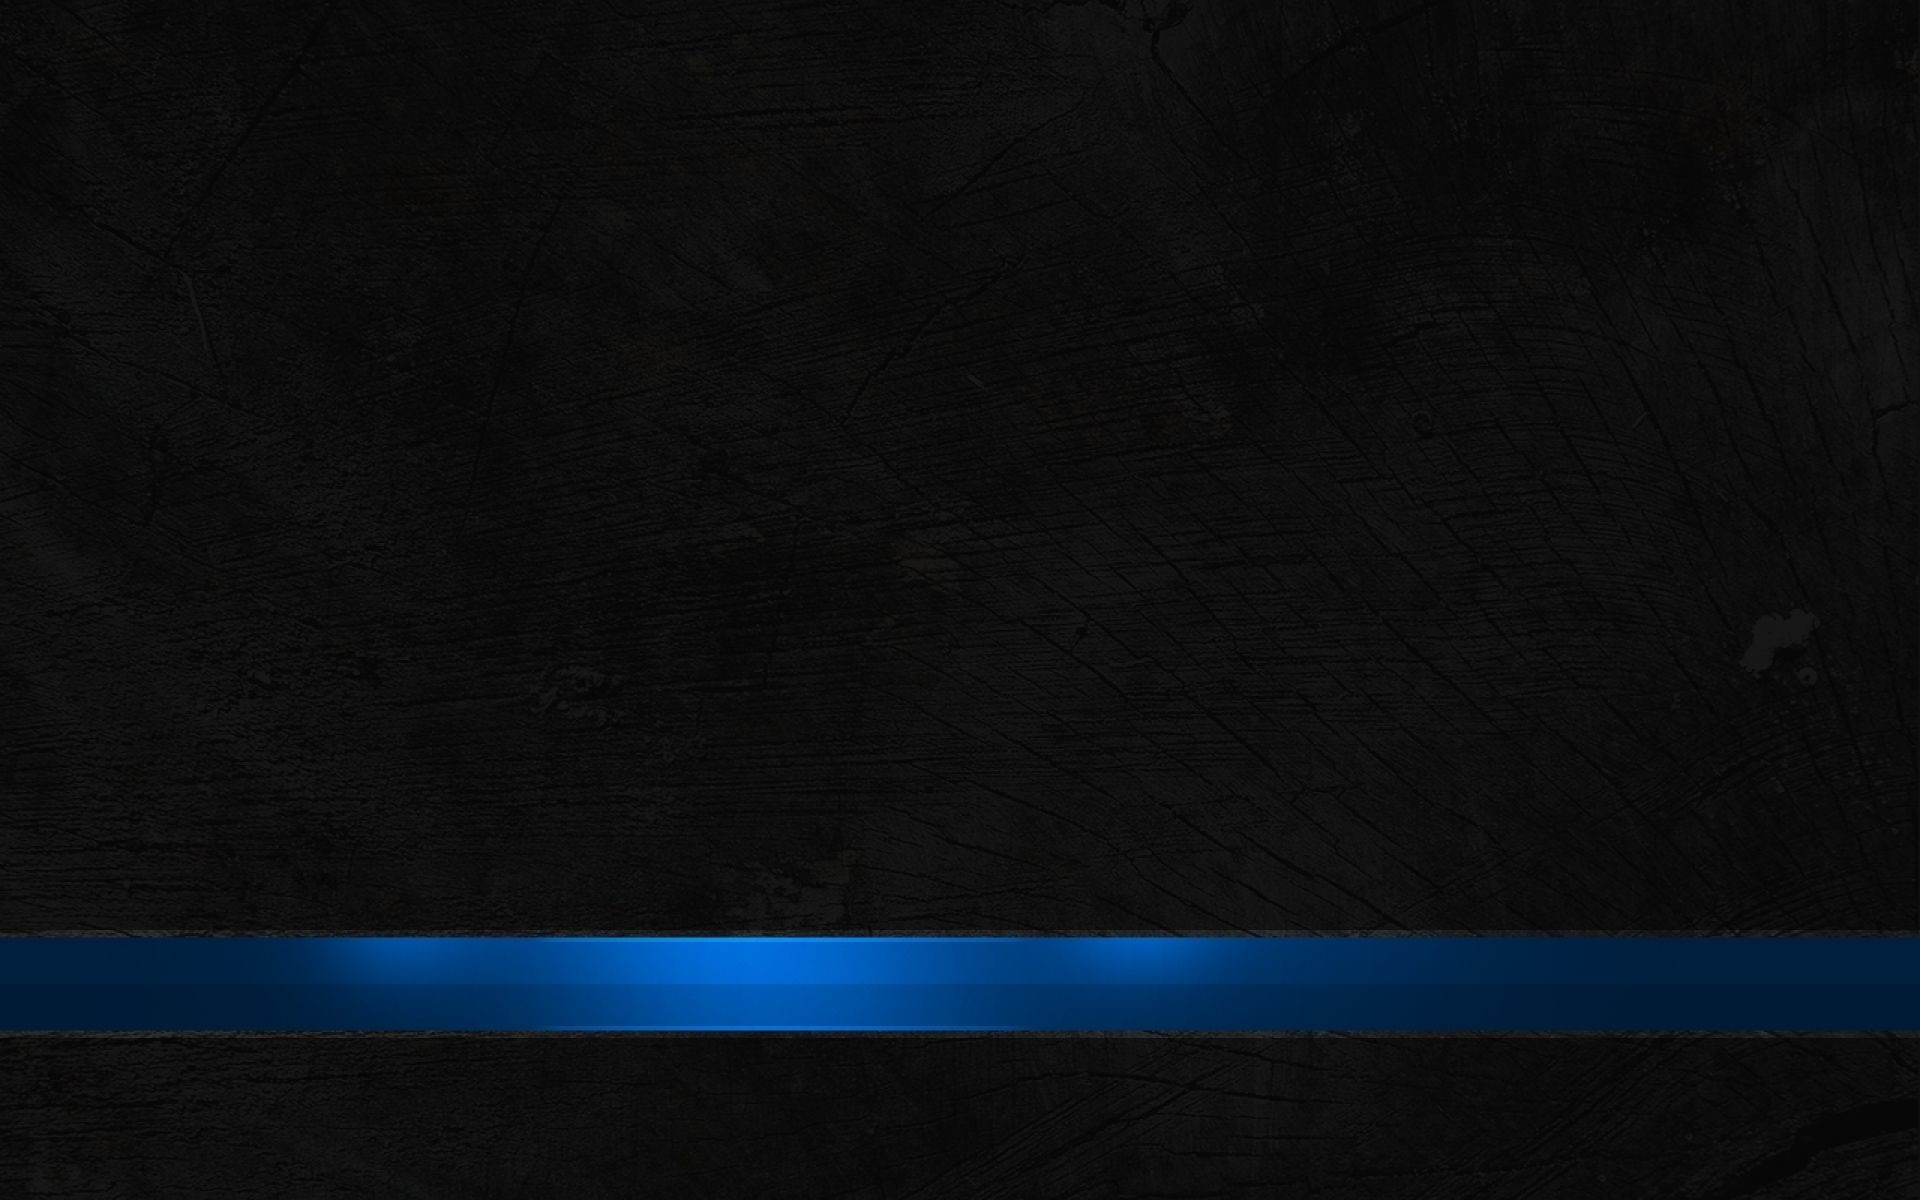 Black And Blue Wallpapers Wallpapertag